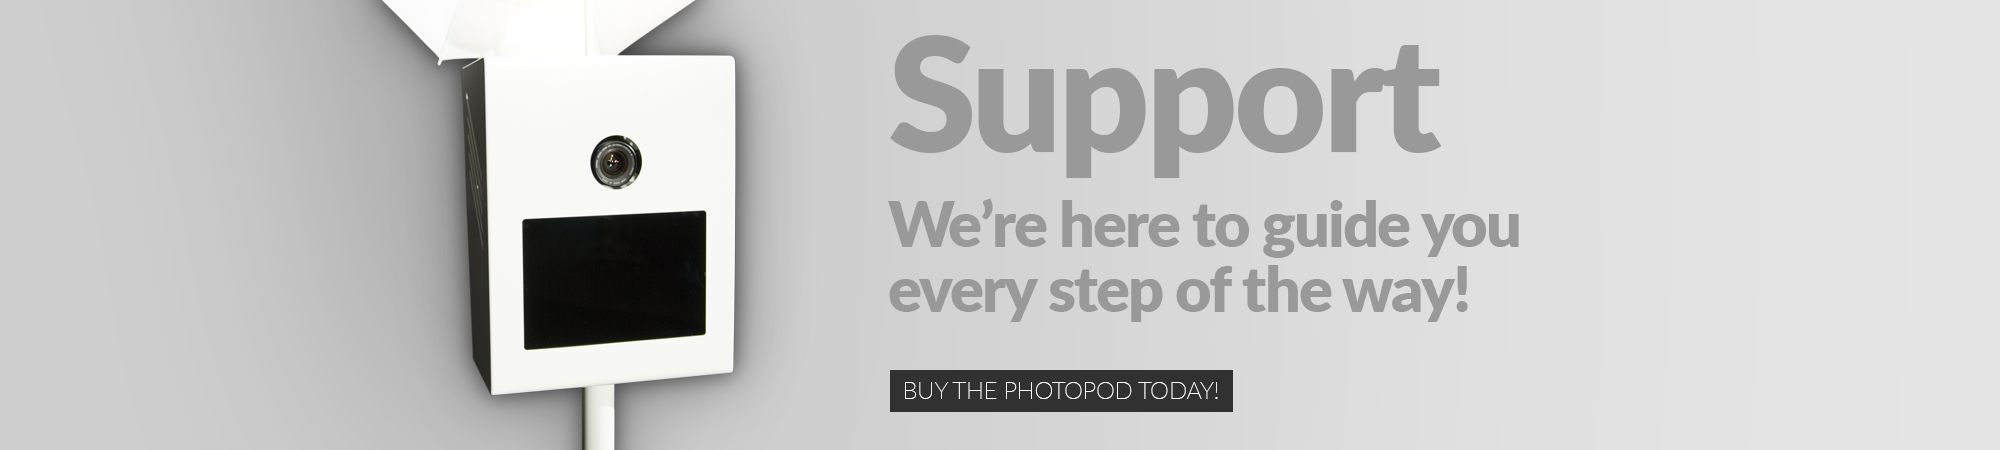 support banner click image to go to buy The Photopod